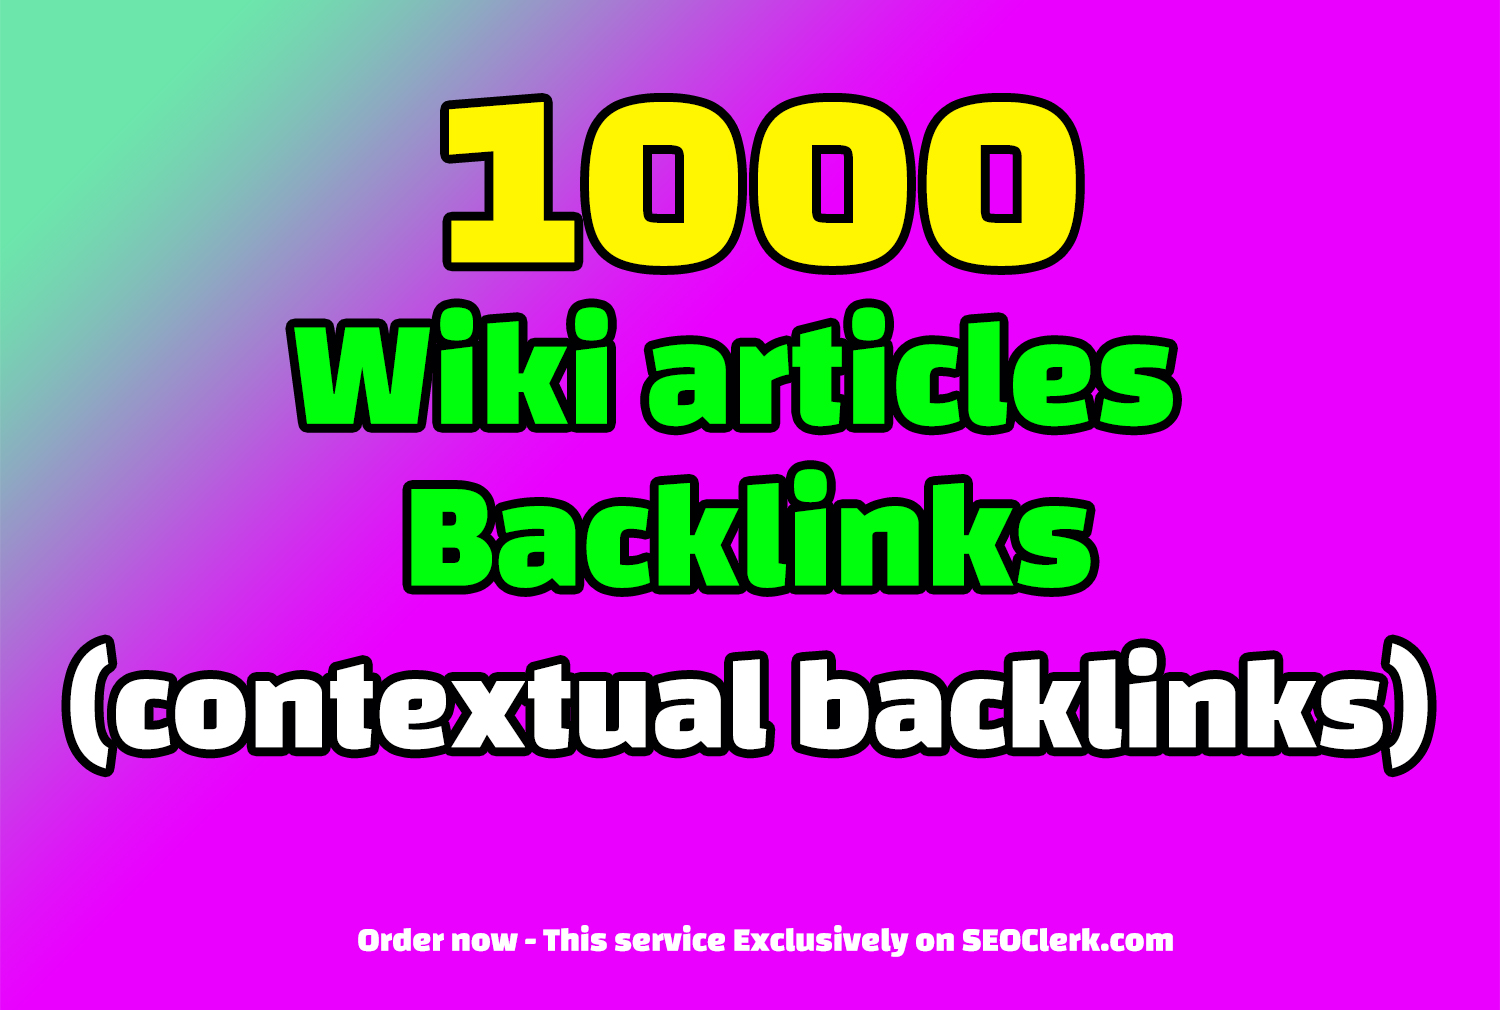 1000 WIKI articles contextual backlinks